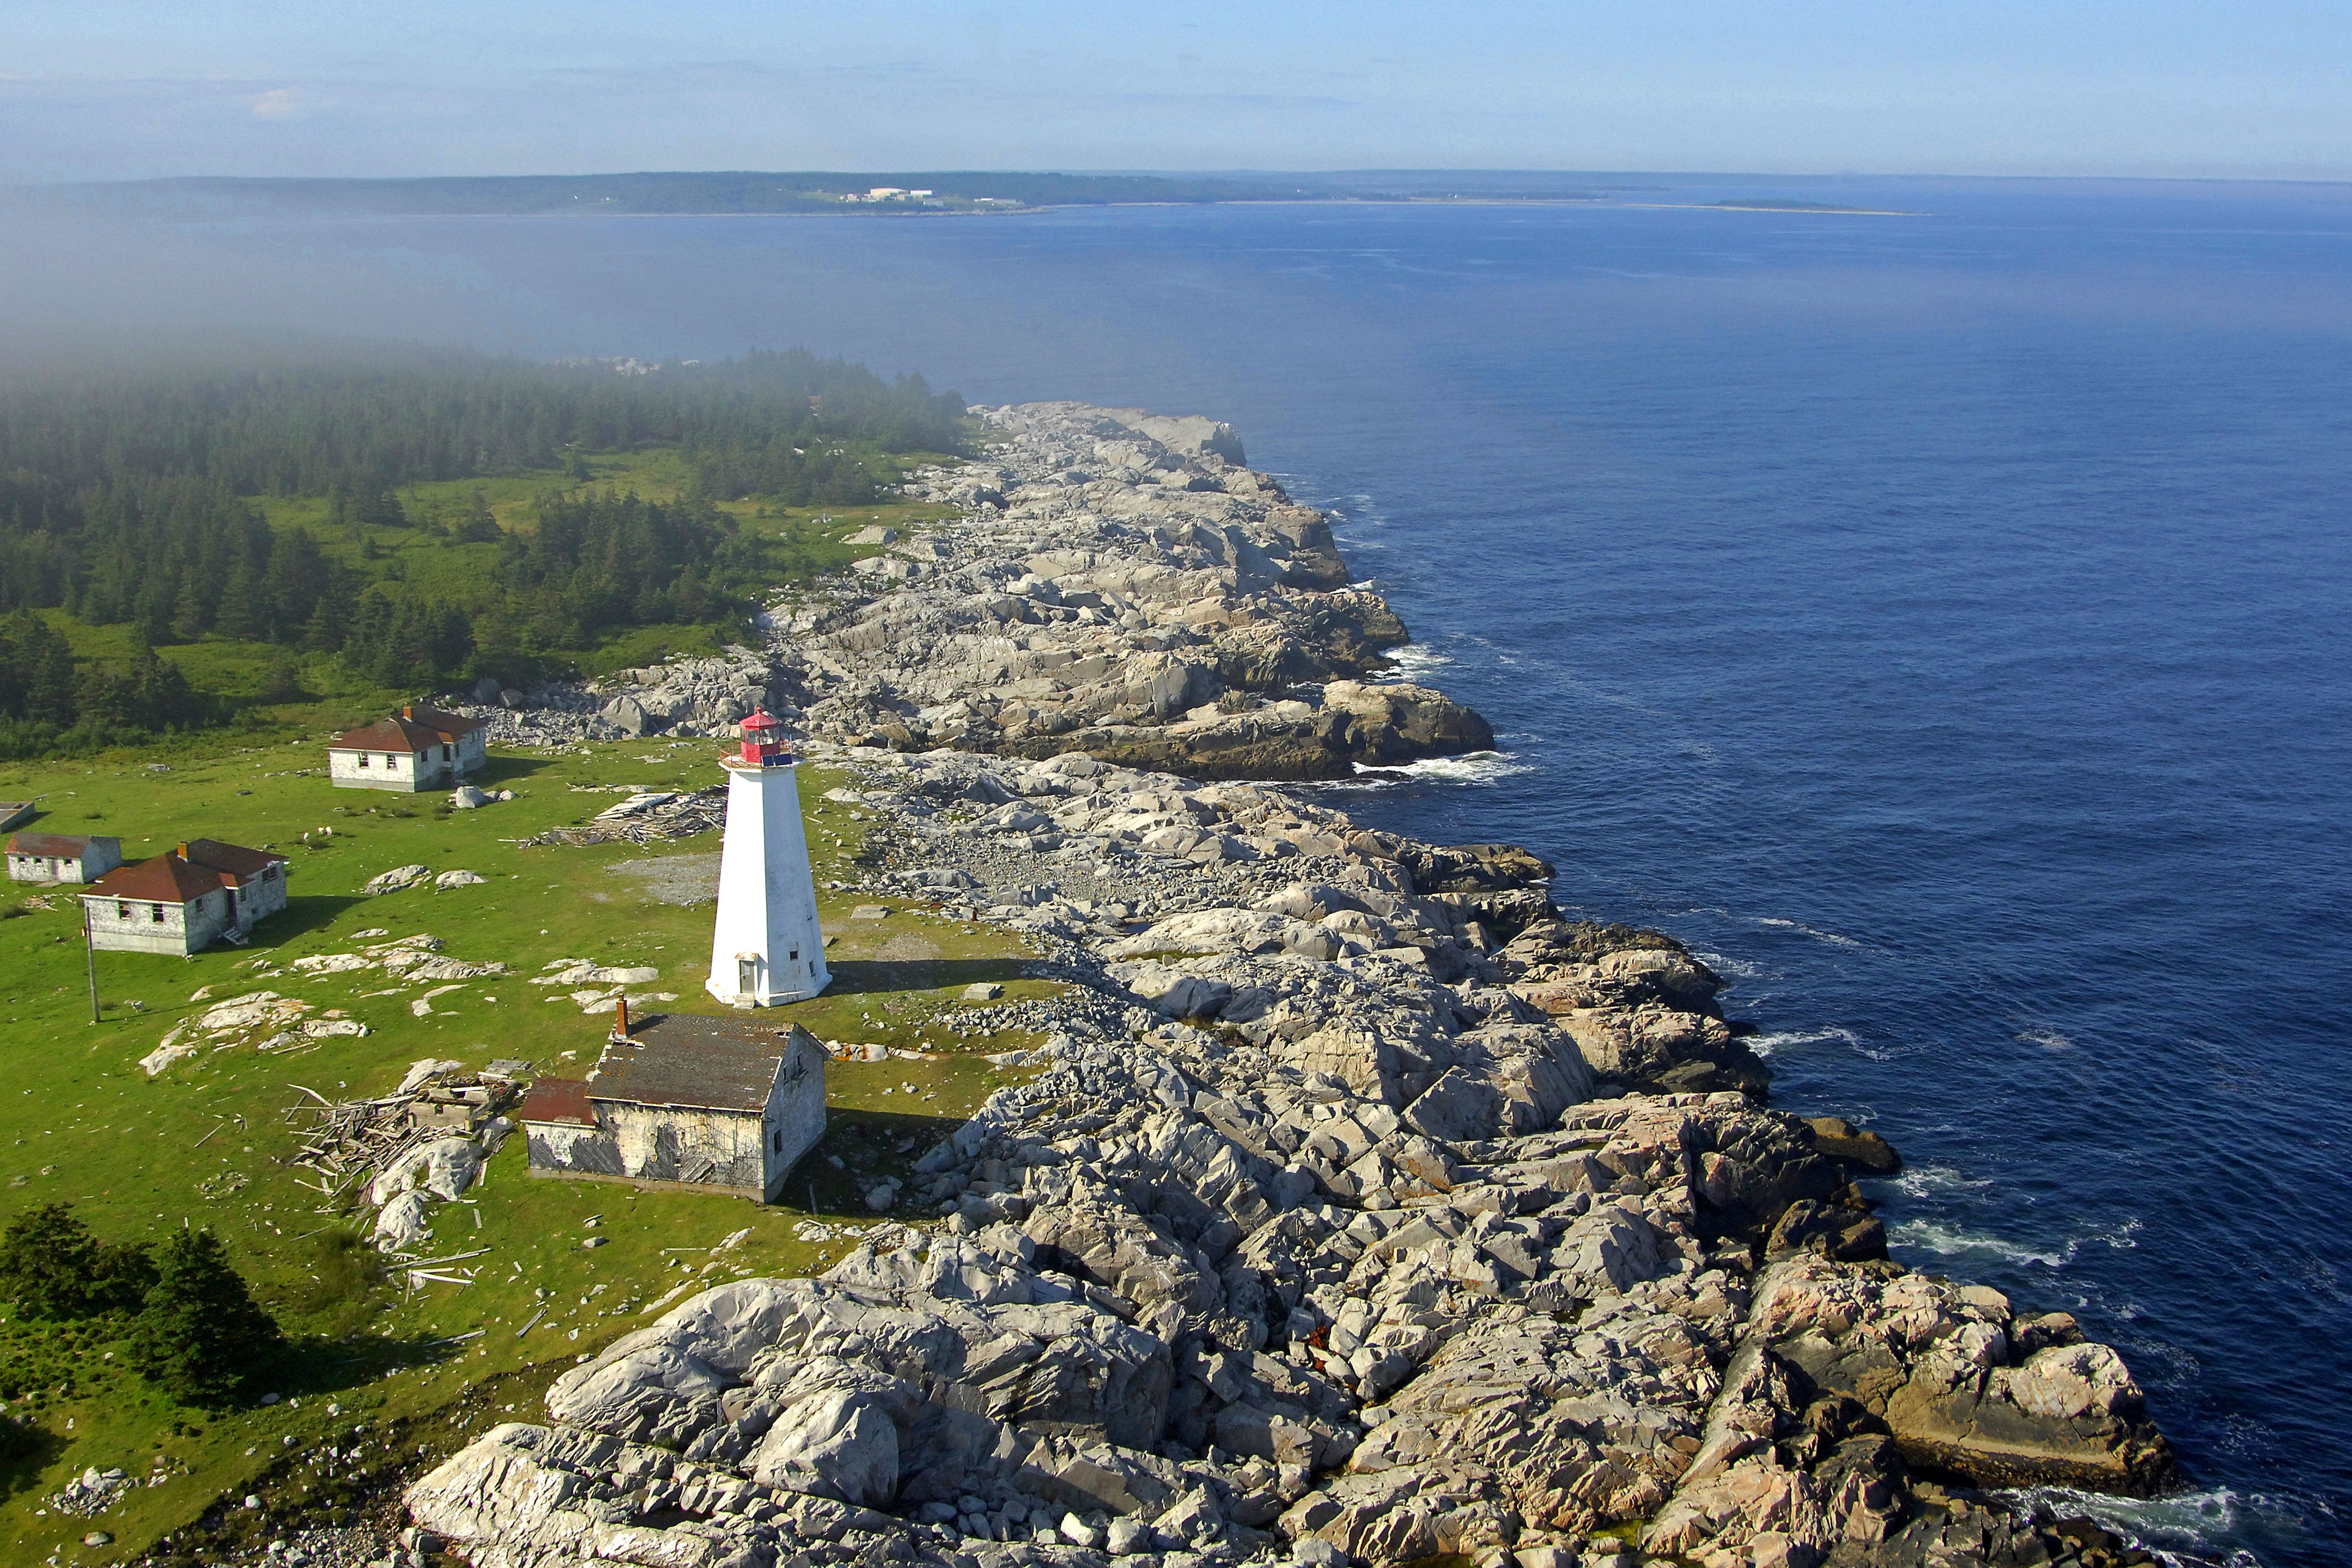 Cape Roseway Lighthouse in McNutt's Island, NS, Canada - lighthouse Reviews - Phone Number ...